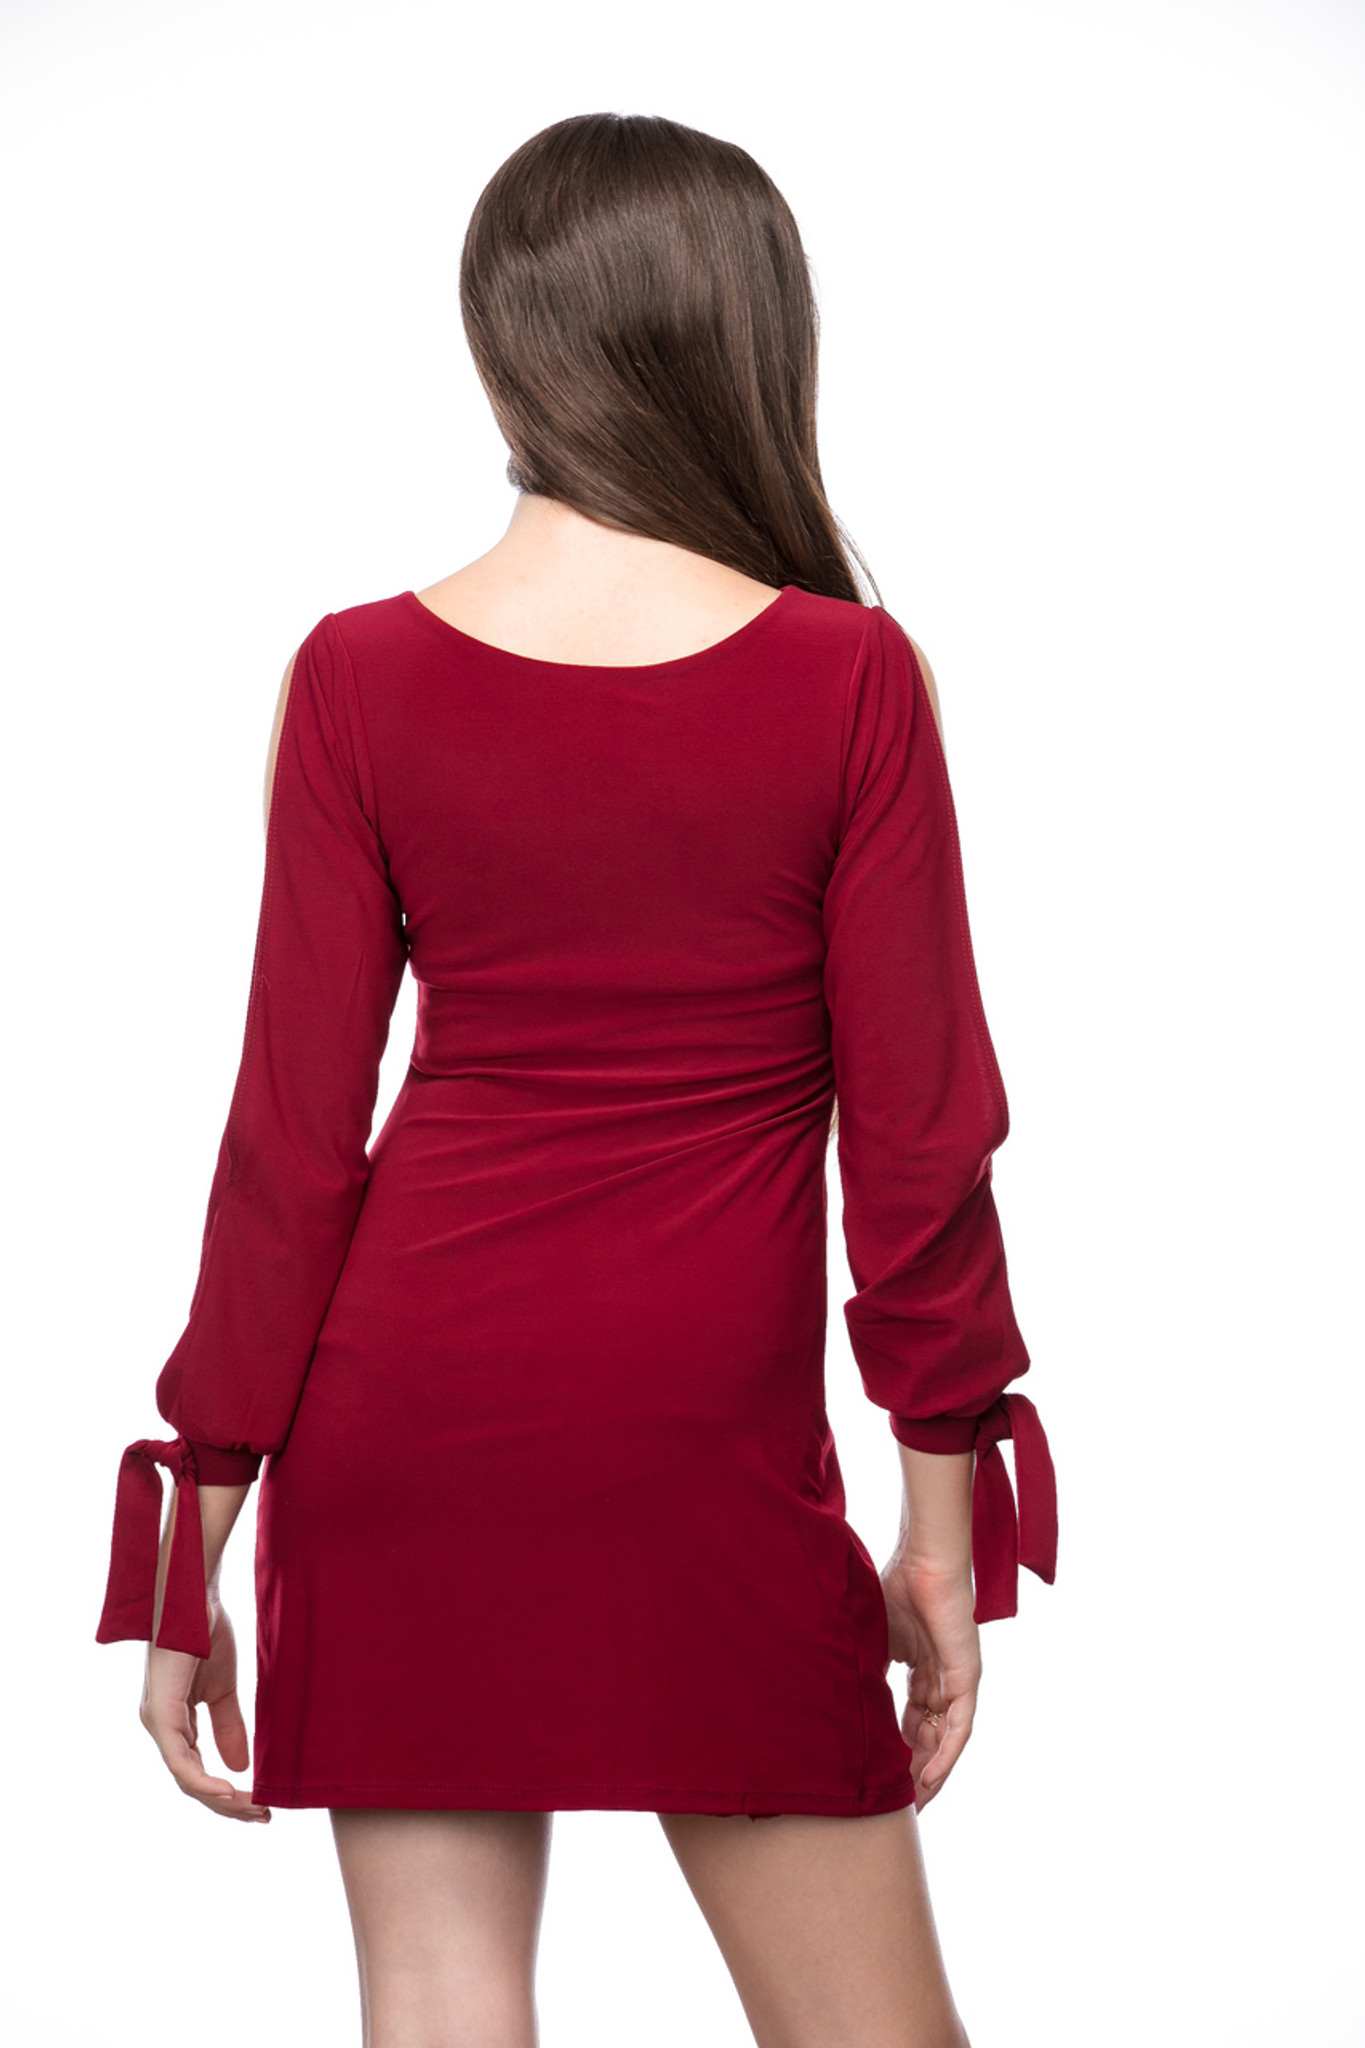 Fitted Long Sleeve Dress with Knot Detail in Burgundy